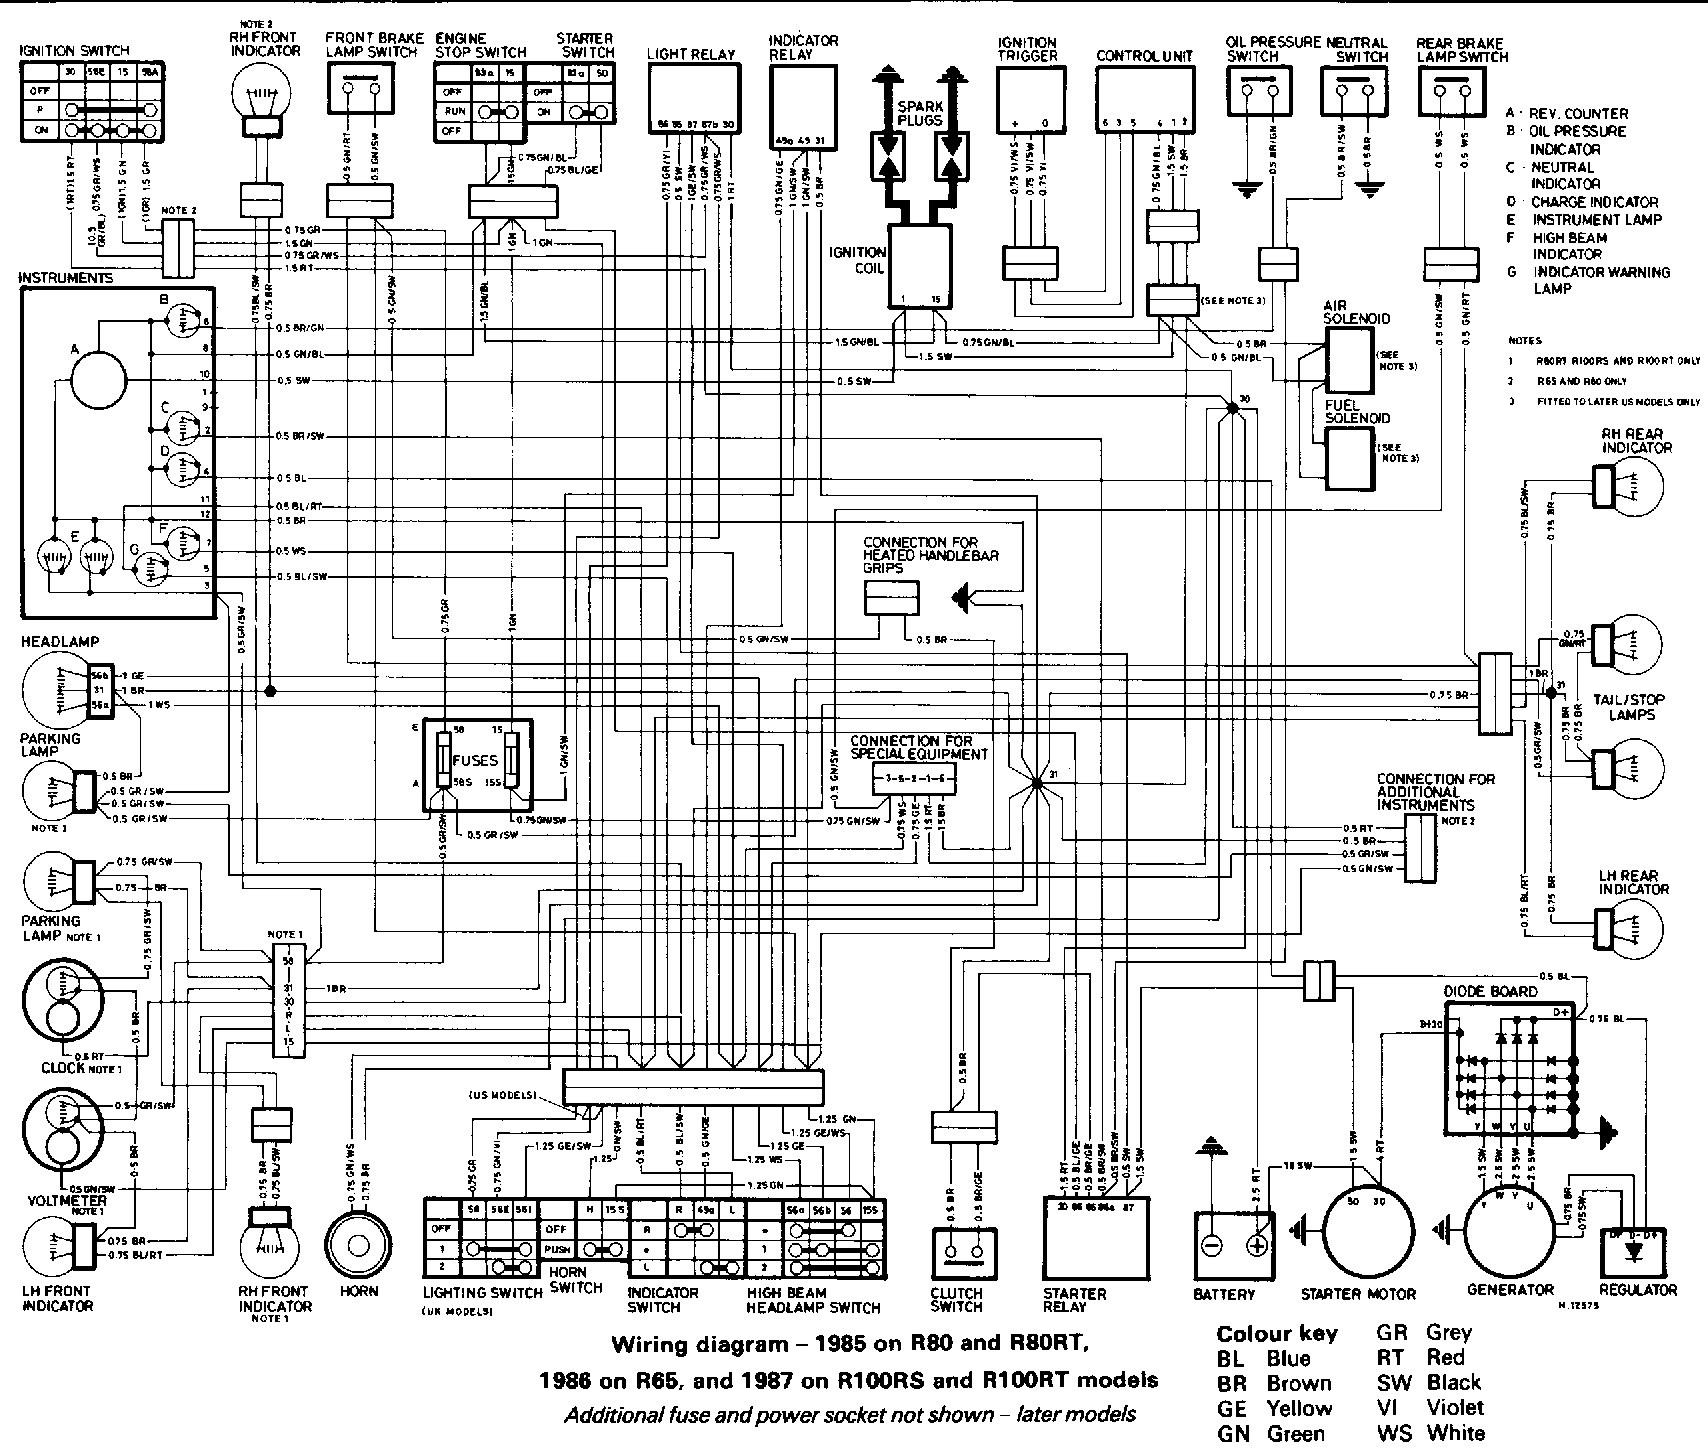 1984 Bmw 318i Stereo Wiring Diagram Solutions Circuit Symbols